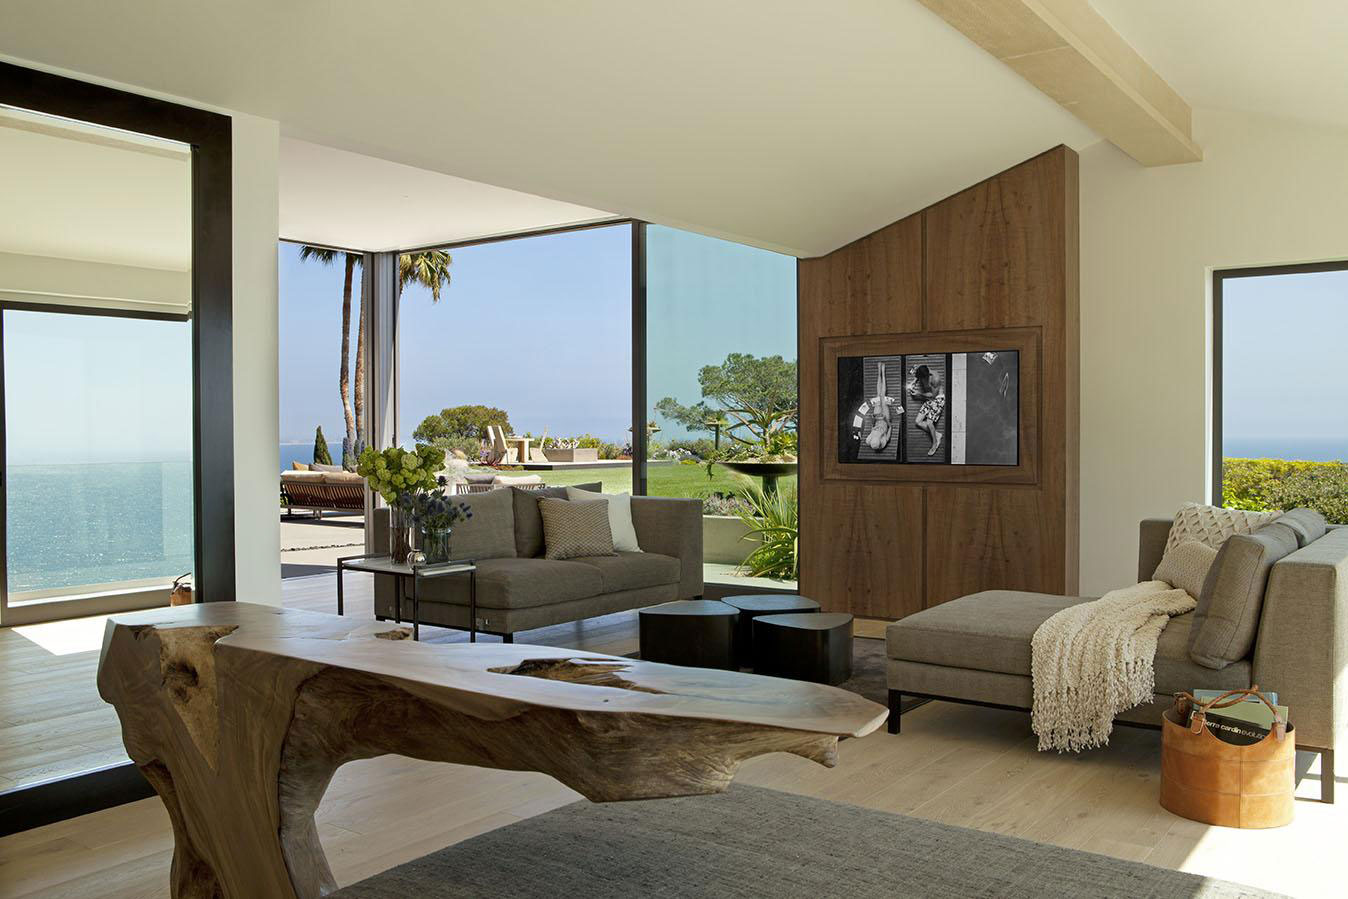 Living space furniture house in pacific palisades los Living spaces furniture